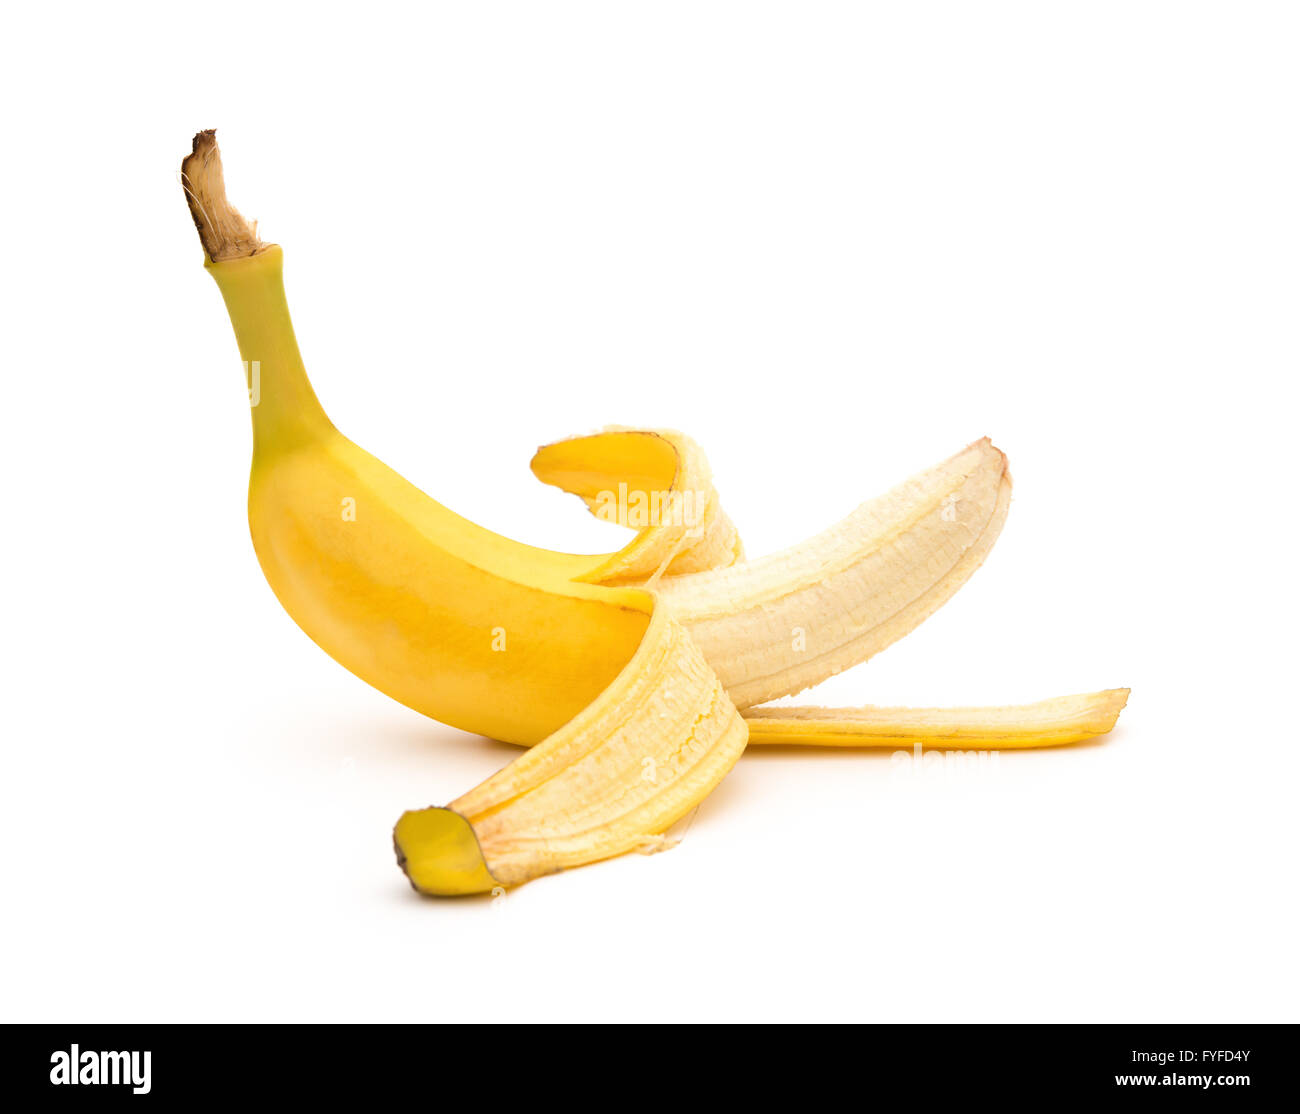 7b64d65e35de3 Half A Banana Stock Photos   Half A Banana Stock Images - Alamy